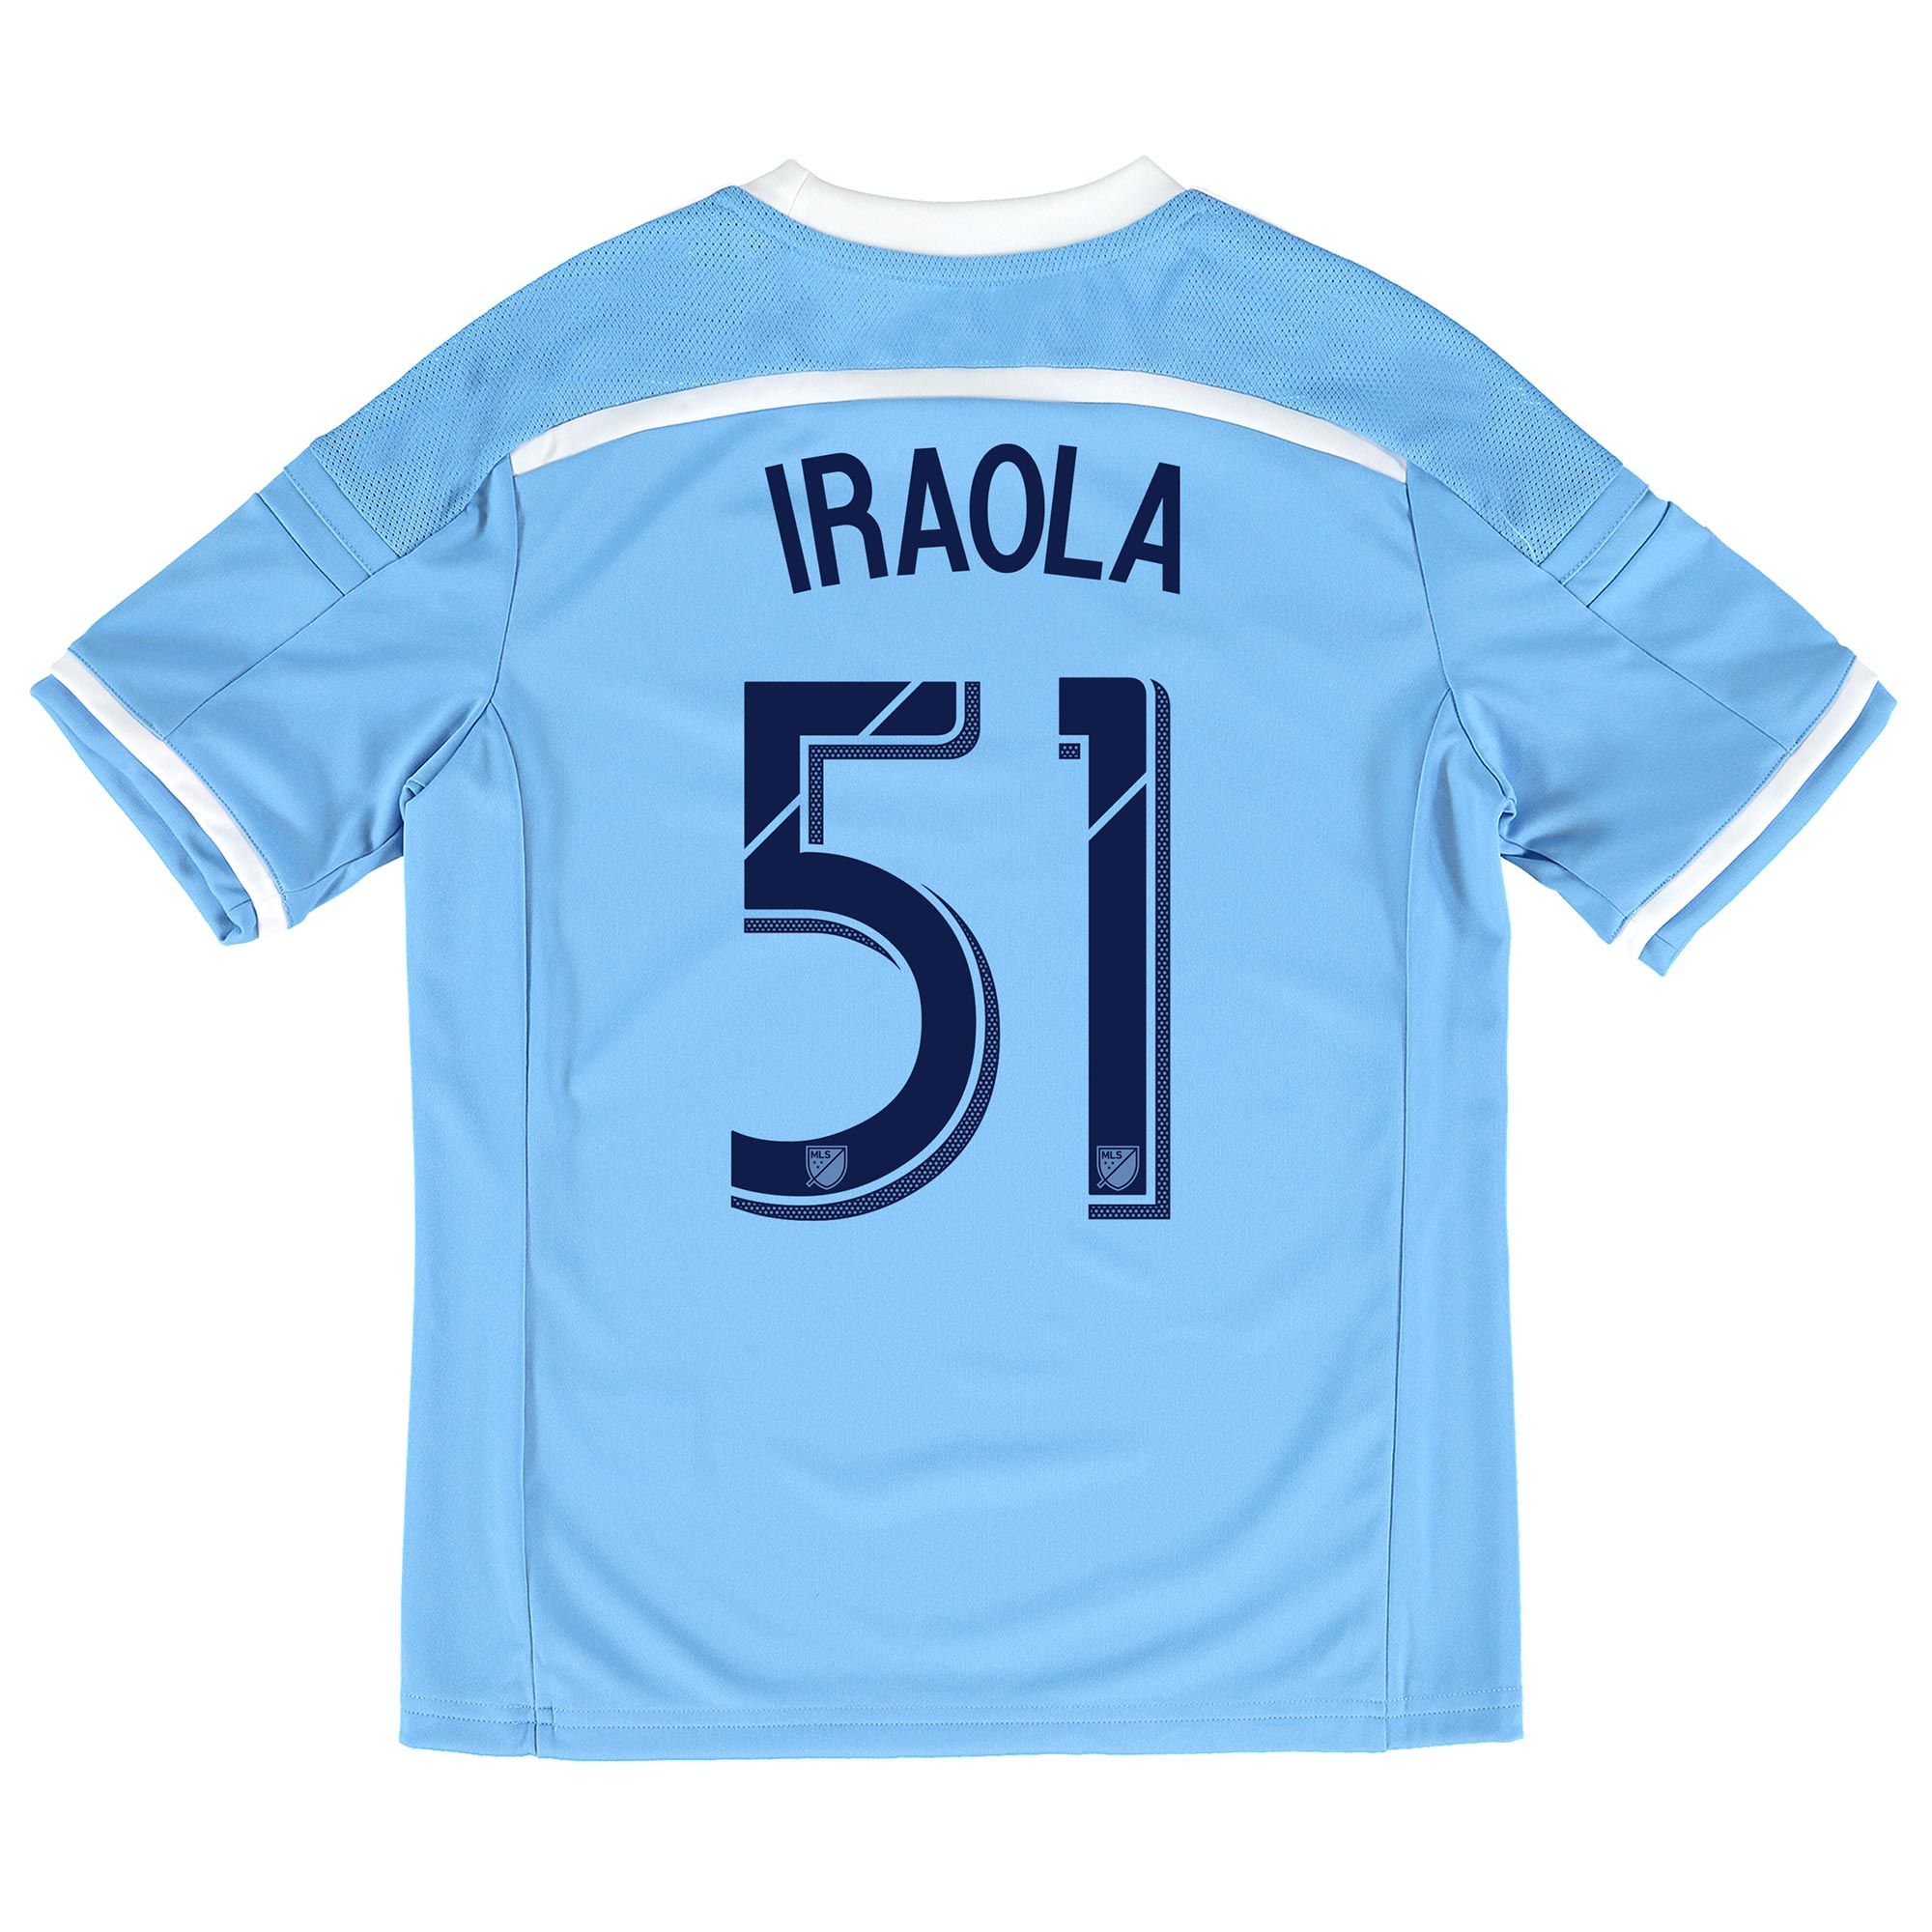 New York City FC Home Shirt 2015-16 - Kids with Iraola 51 printing